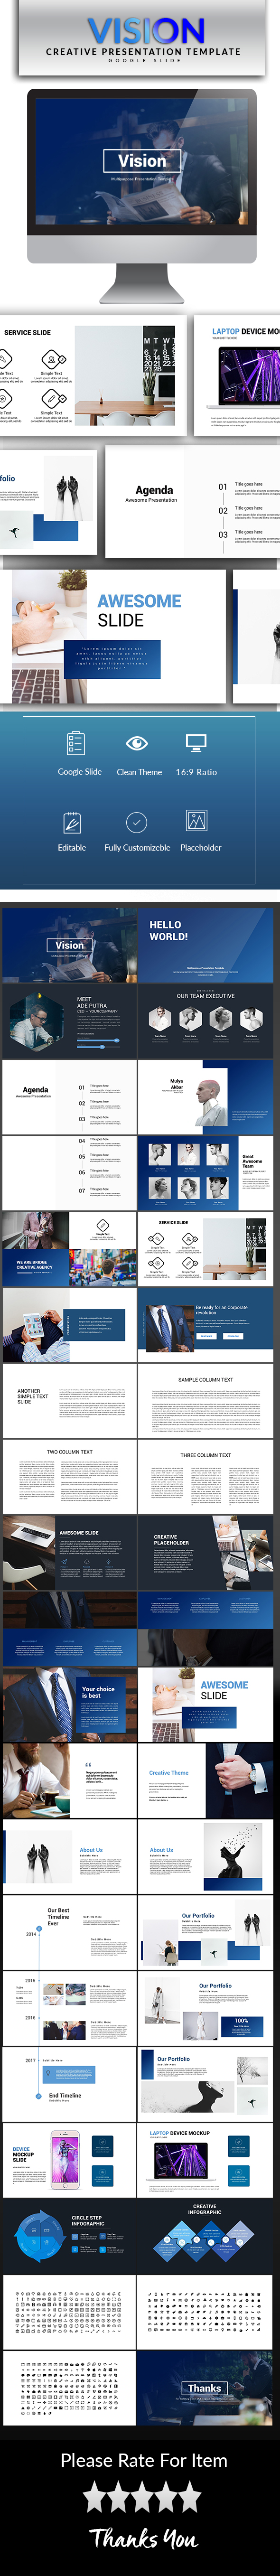 Vision Google Slide Template - Google Slides Presentation Templates